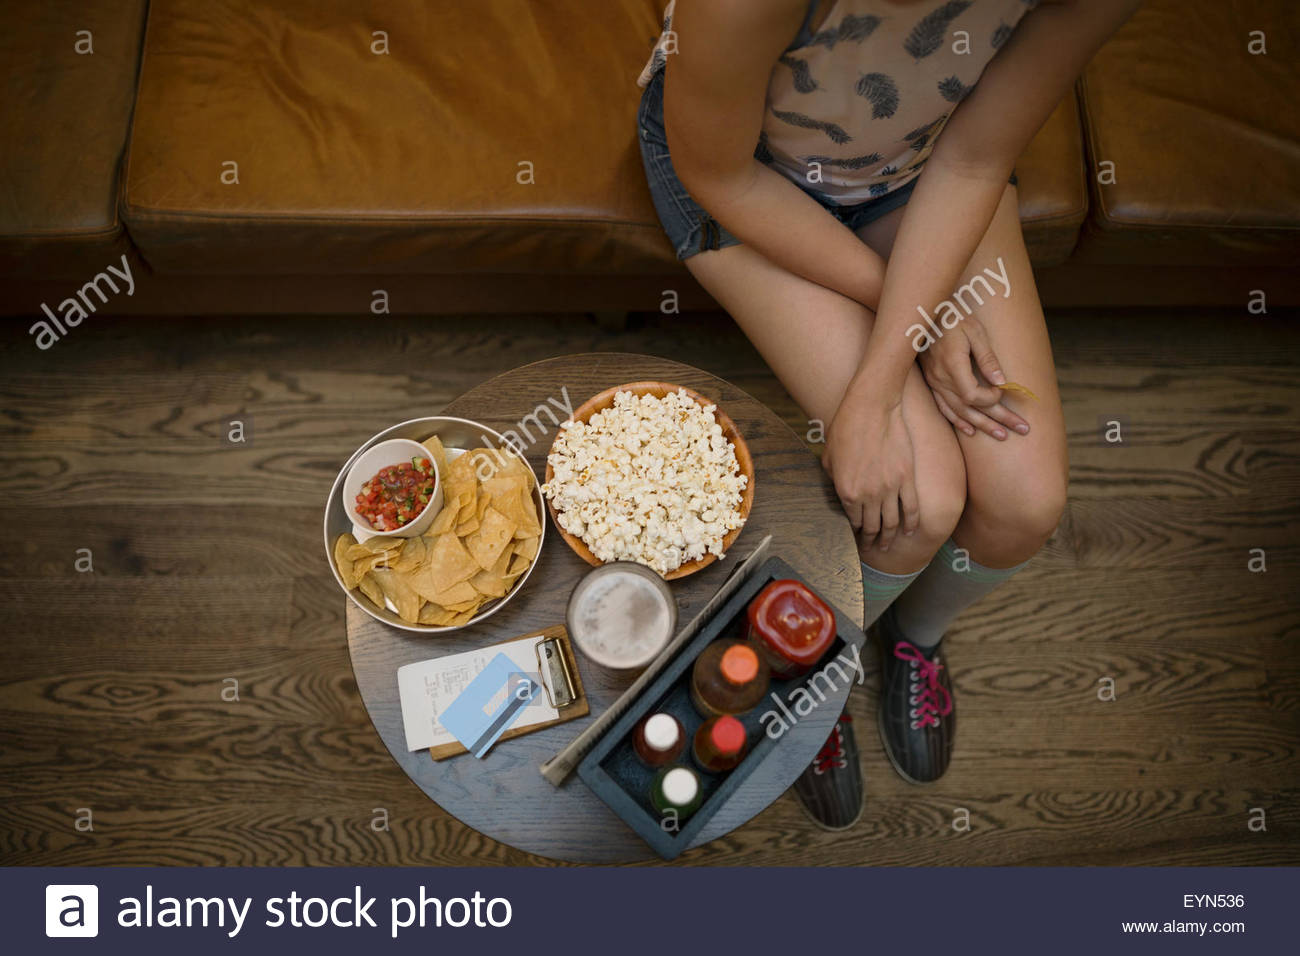 Overhead view young woman with snacks bowling alley - Stock Image